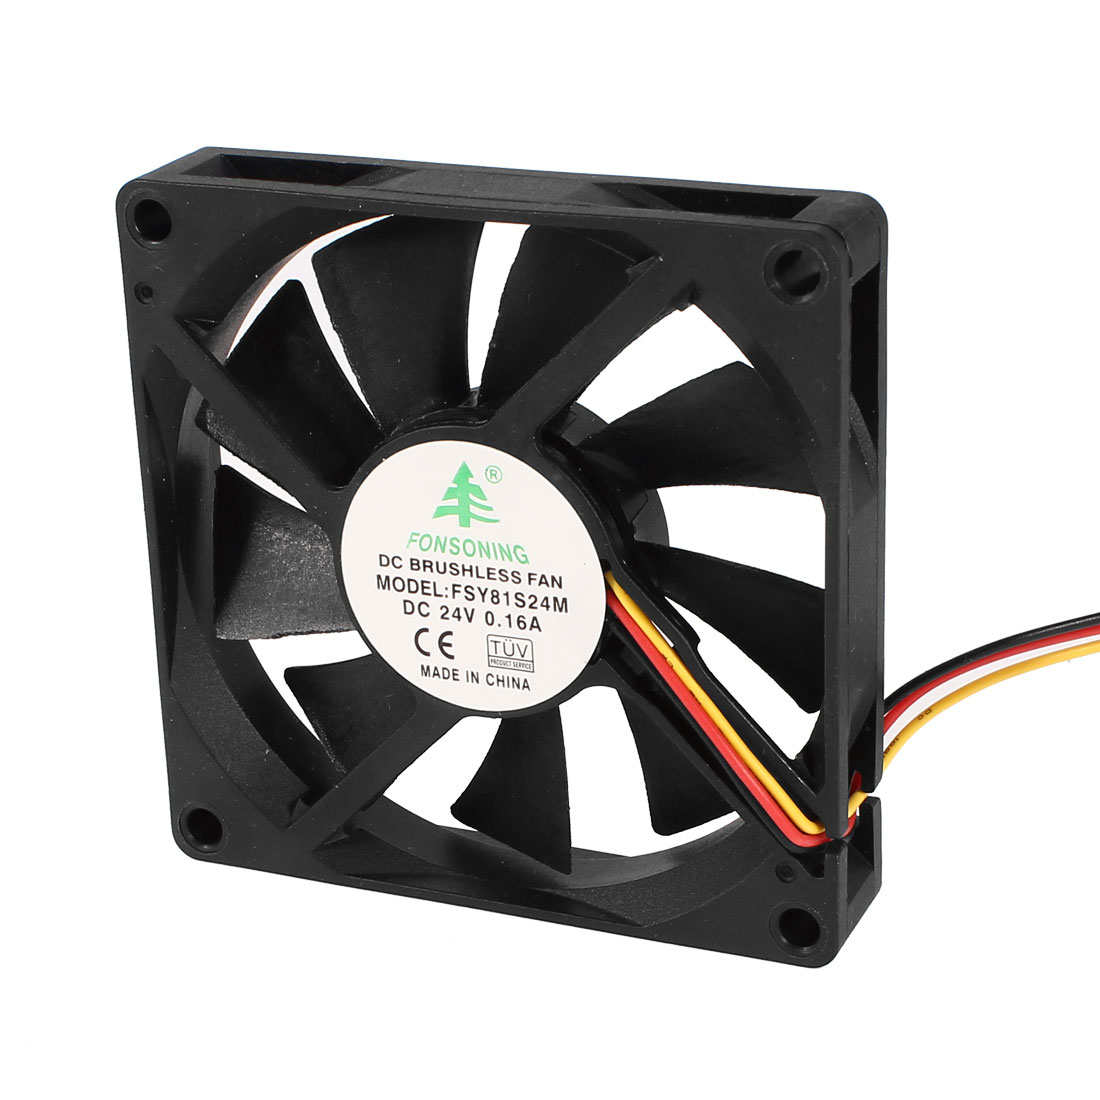 FSY81S24M 80mm x 80mm x 15mm 3Pin 24V DC Brushless Sleeve Bearing Cooling Fan for PC Case